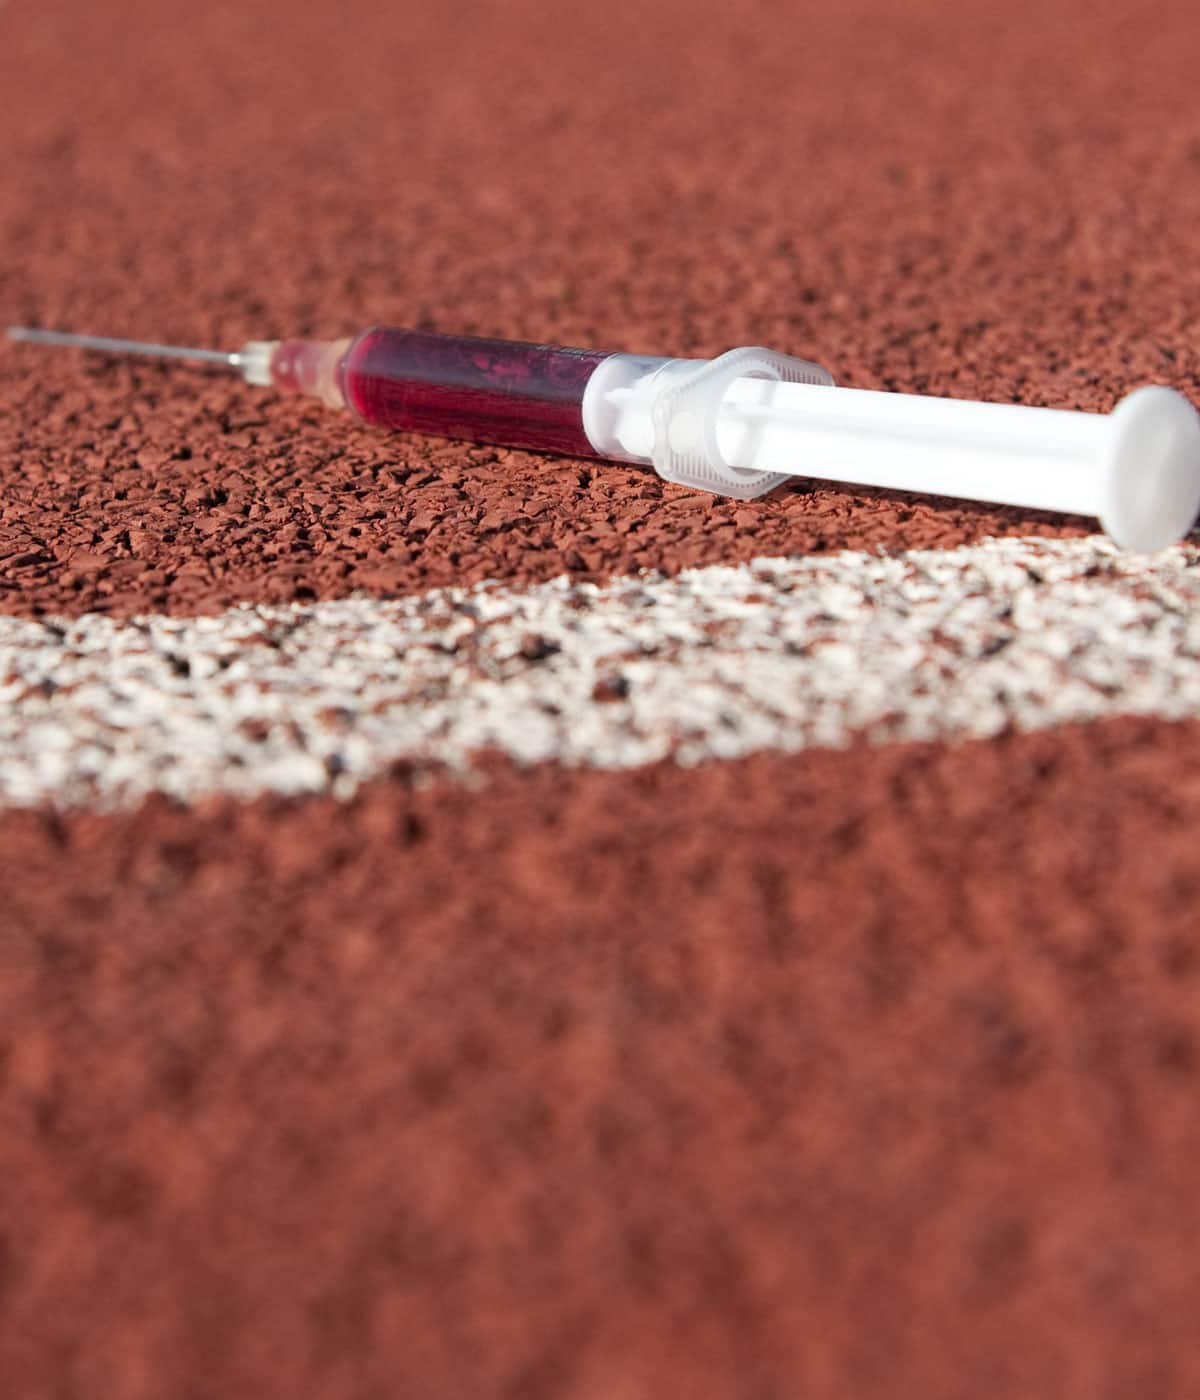 Doping track and field athletes are just built for the guilt